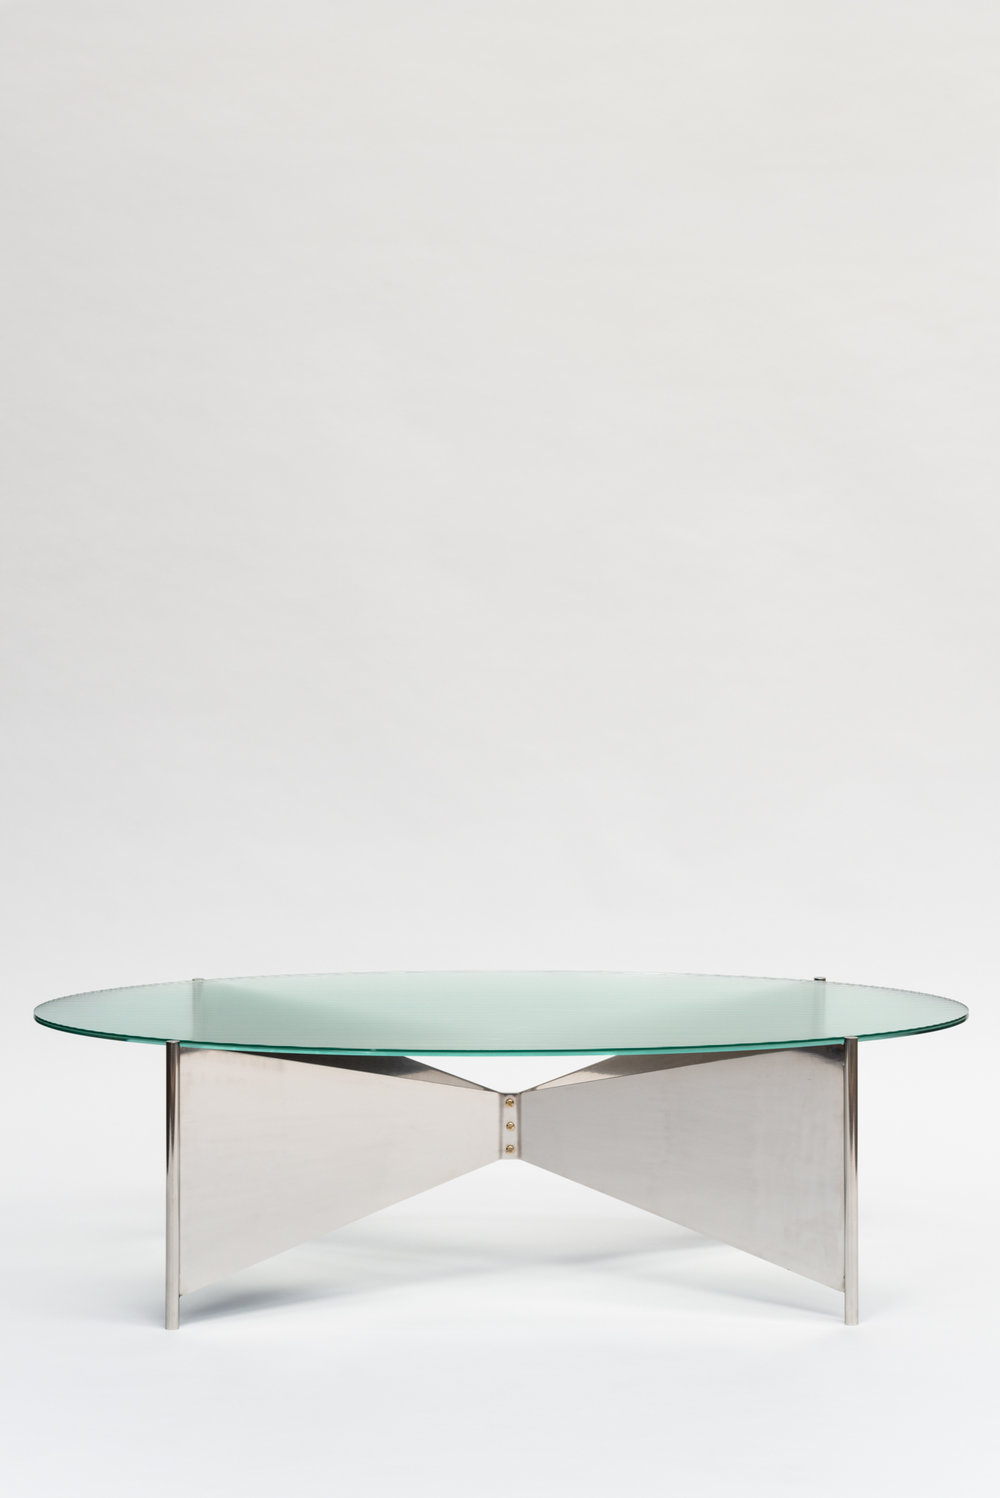 bermondsey coffee table -